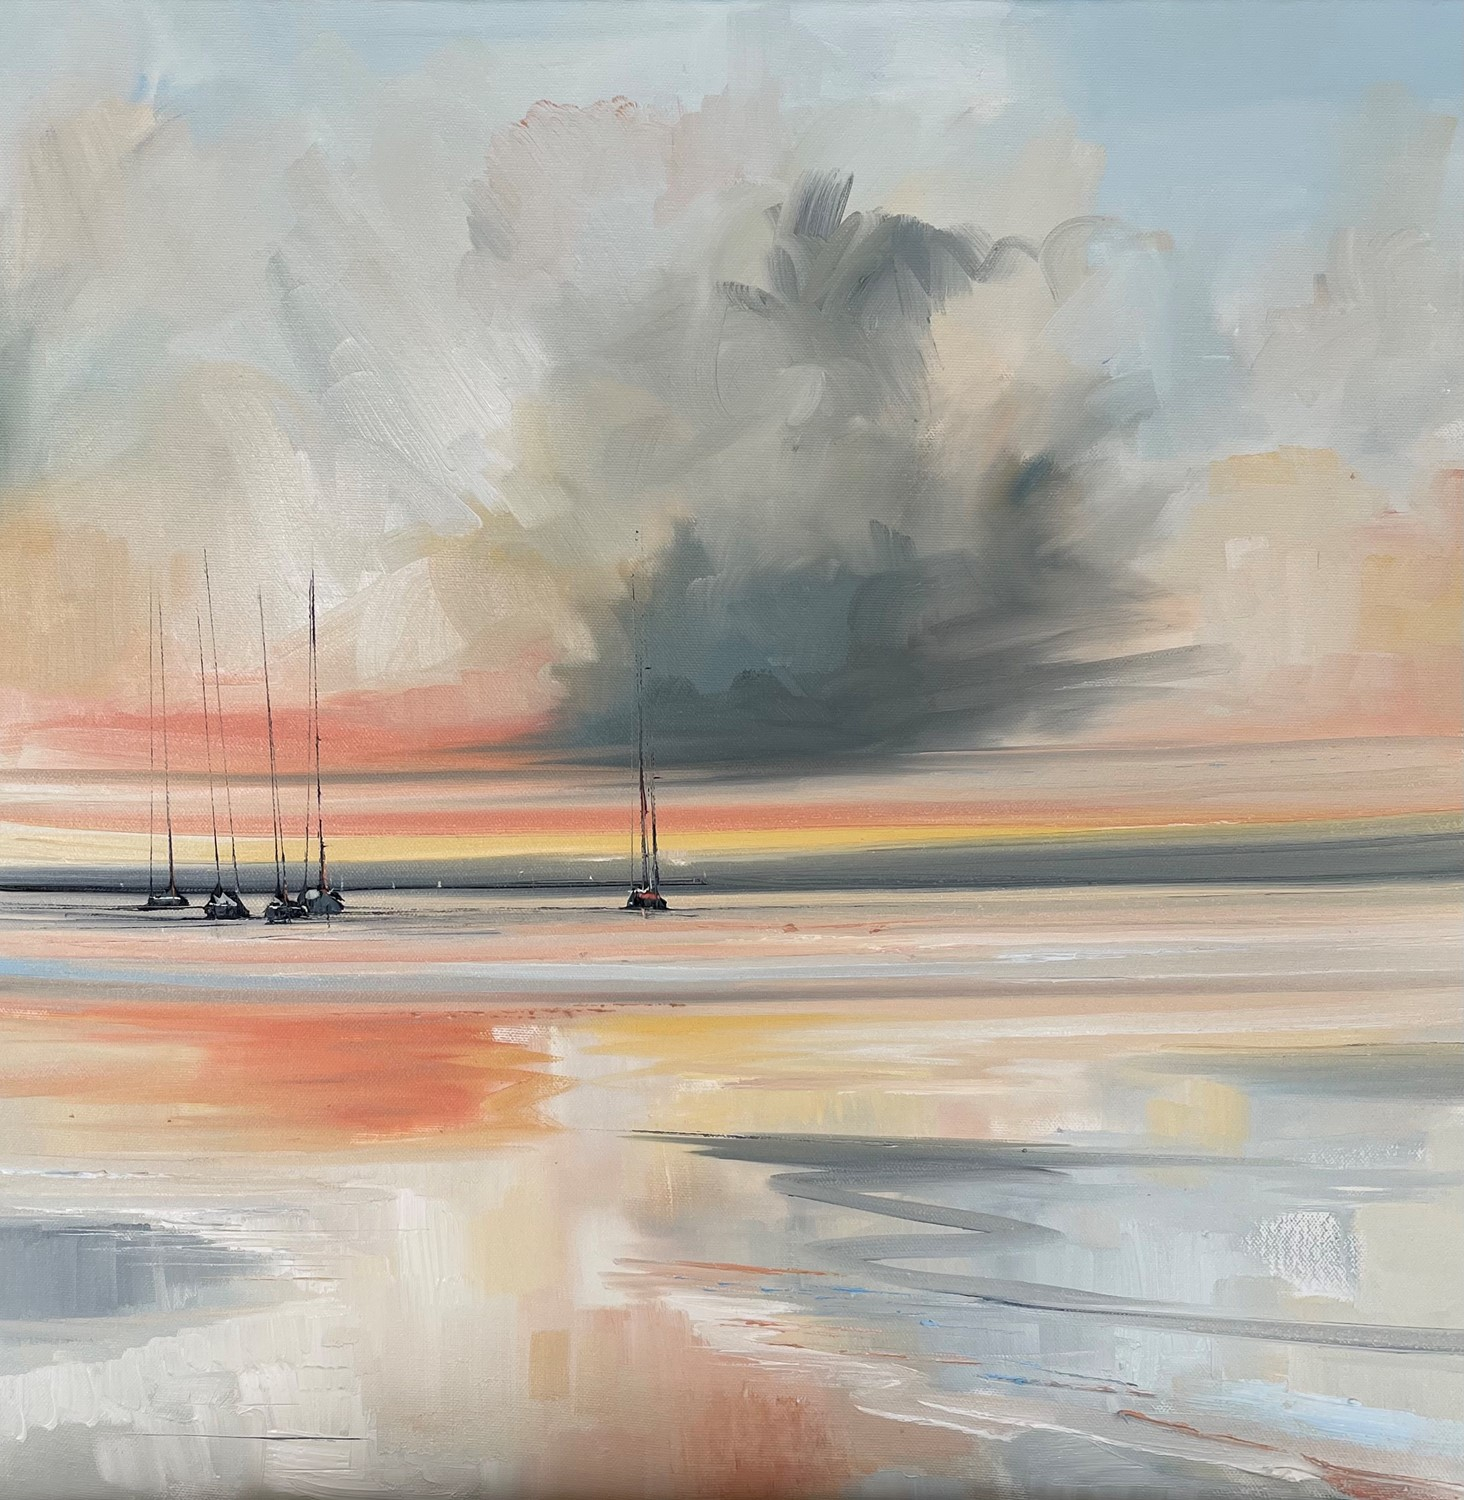 'Cloud and sunset ' by artist Rosanne Barr